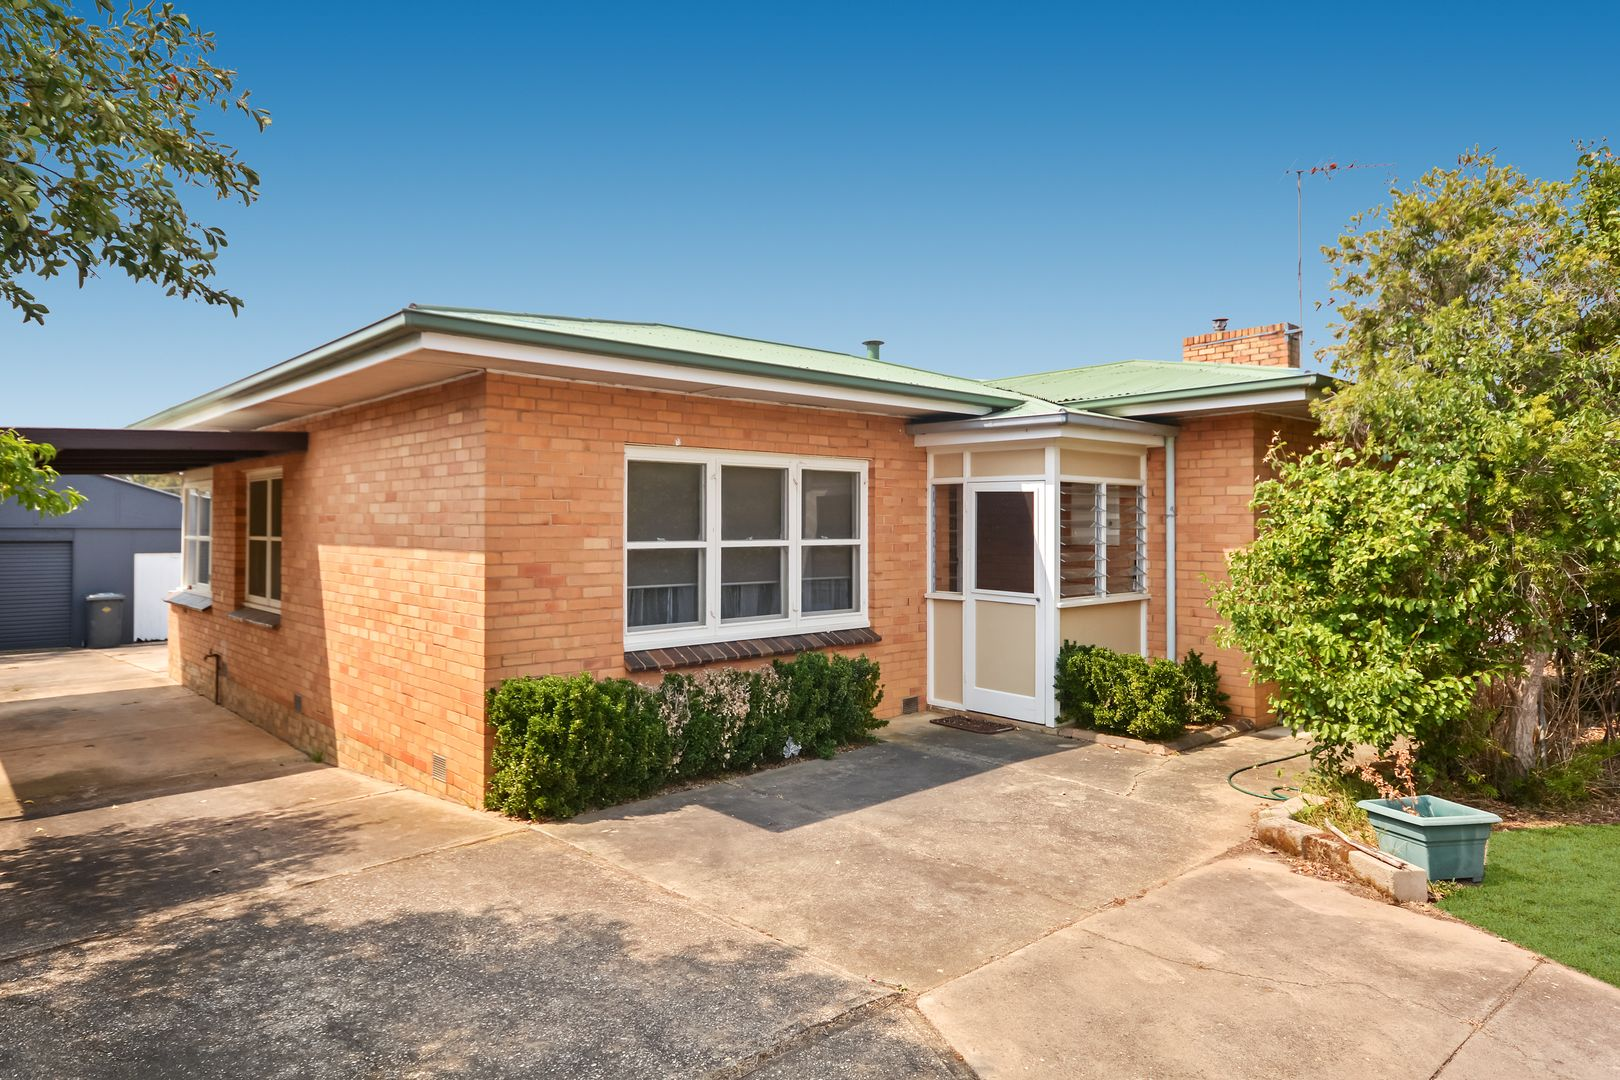 1 Proctor St, Stawell VIC 3380, Image 0